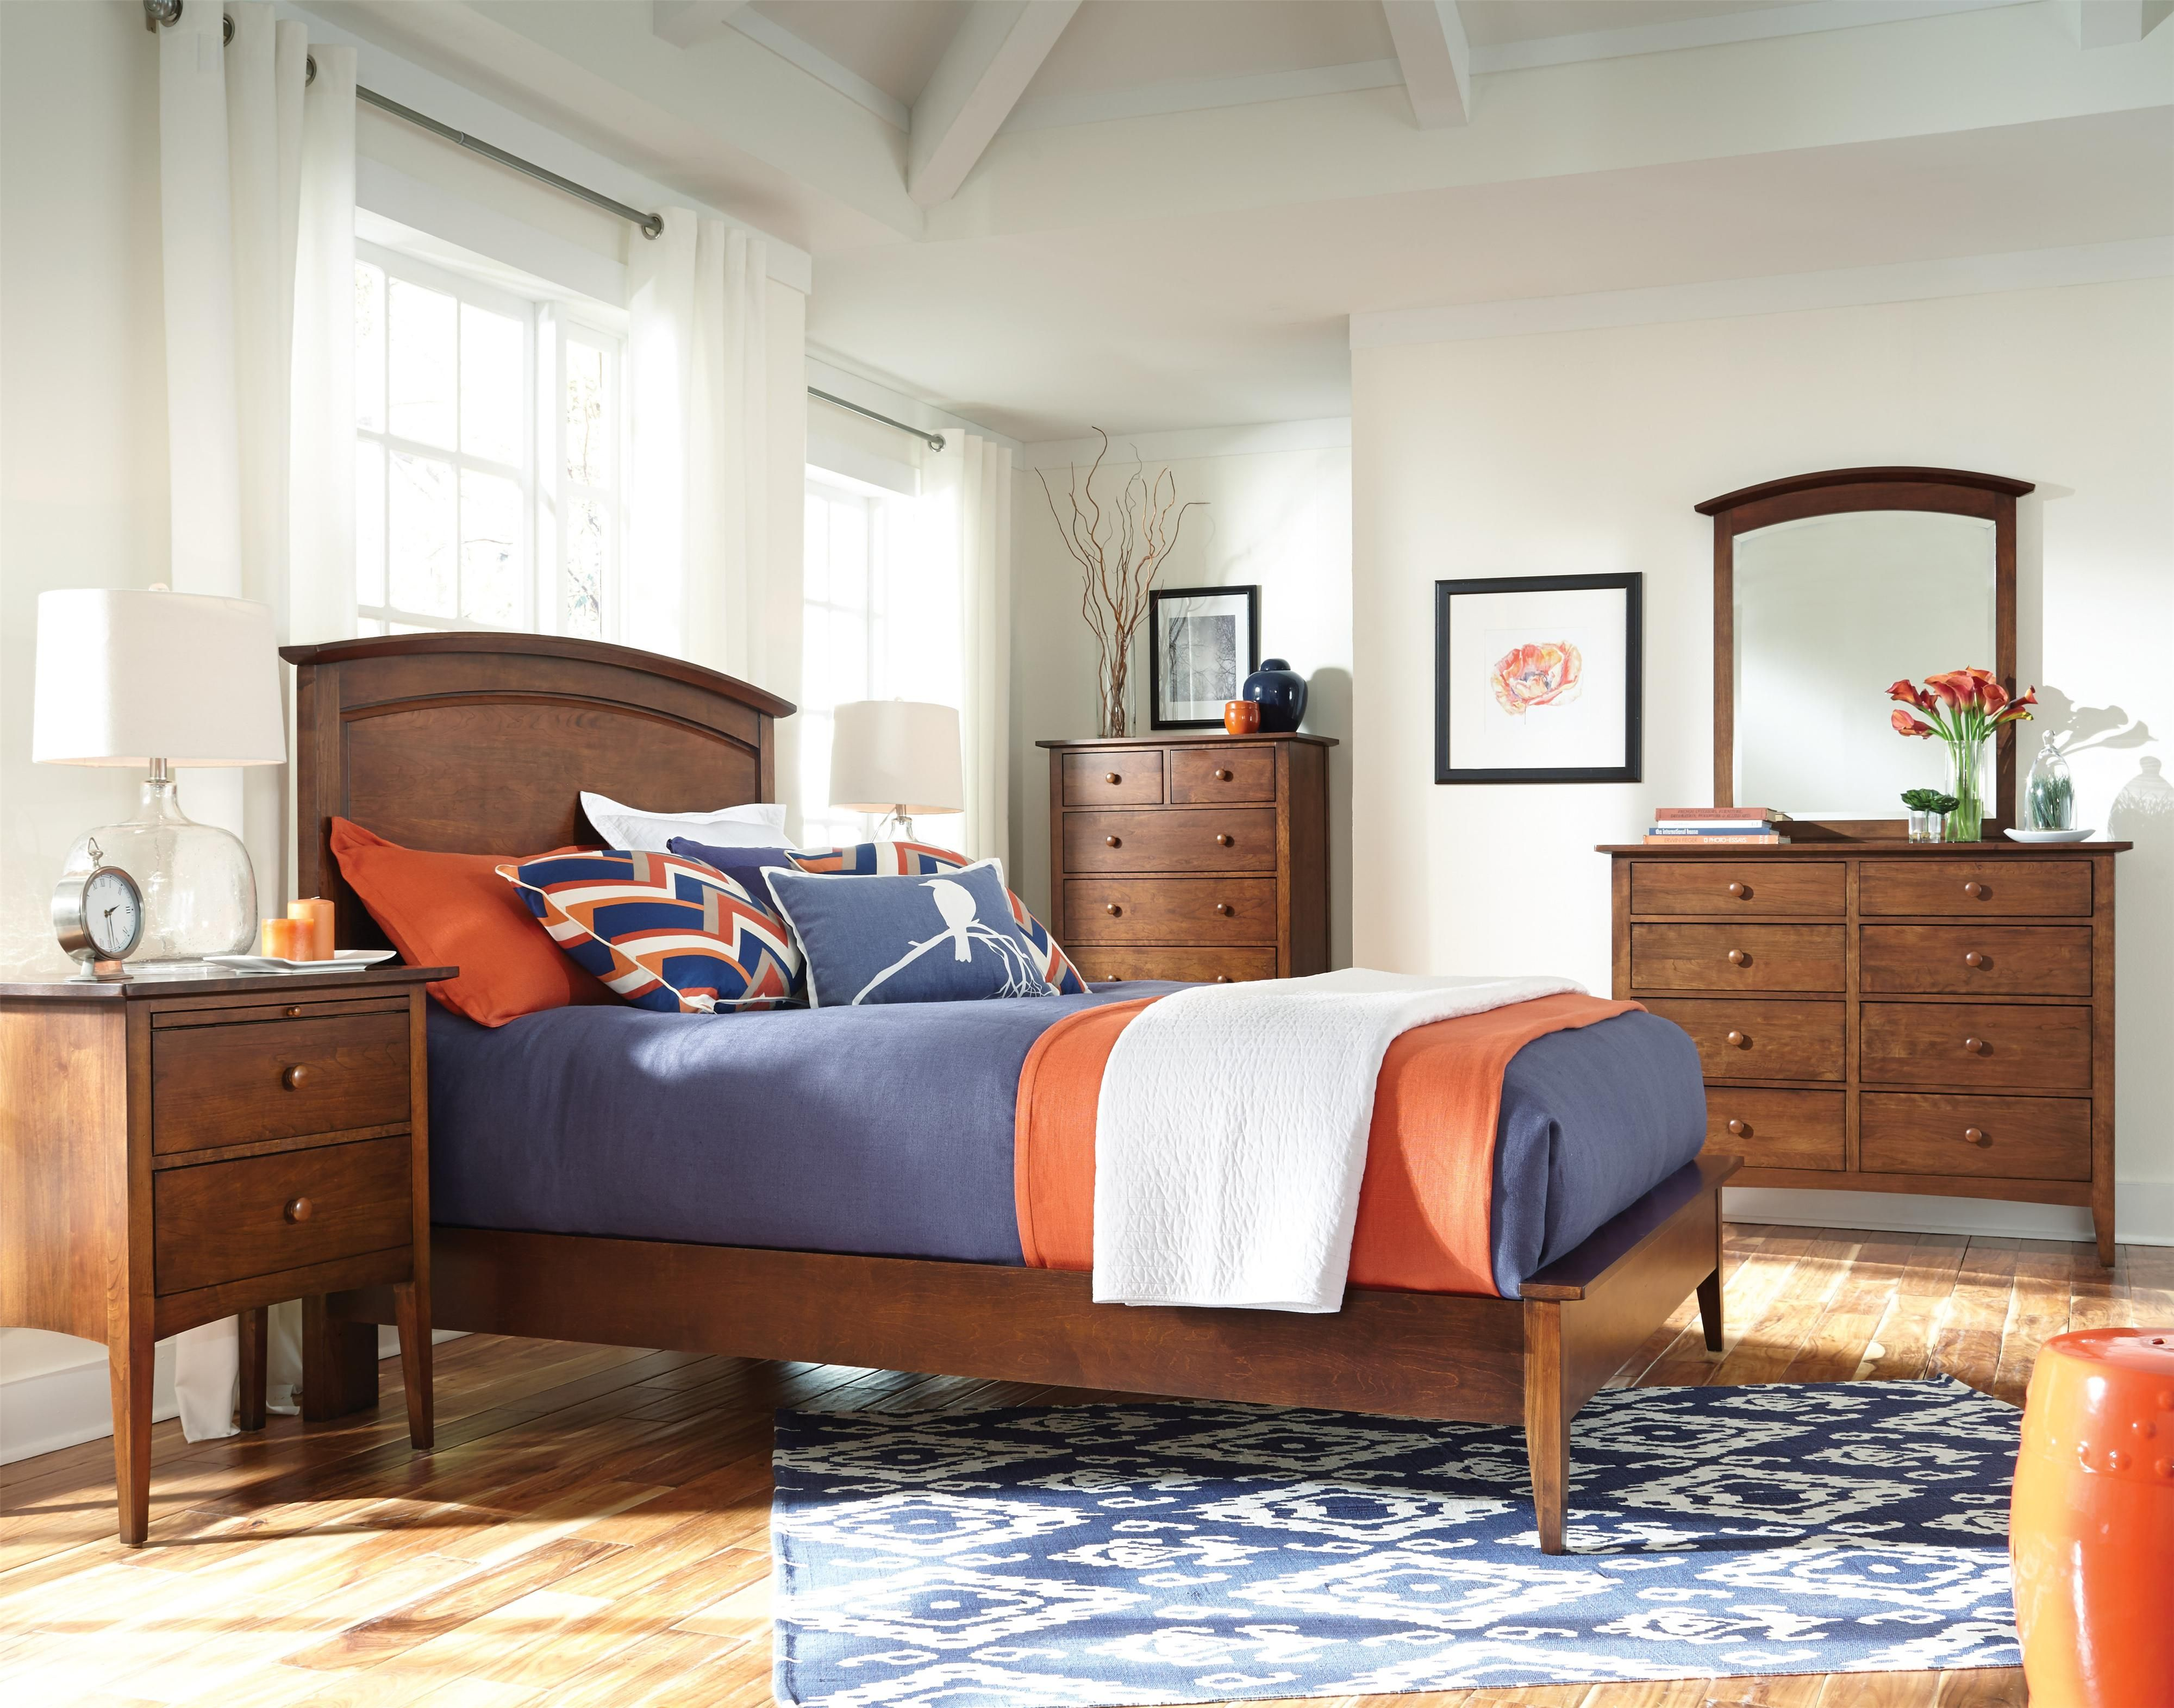 Superieur ... Wood Bedroom Furniture , Dining Room Furniture, And Living Room Sofas  And Tables. Official Site Of Kincaid Furniture Company, Hudson, North  Carolina.